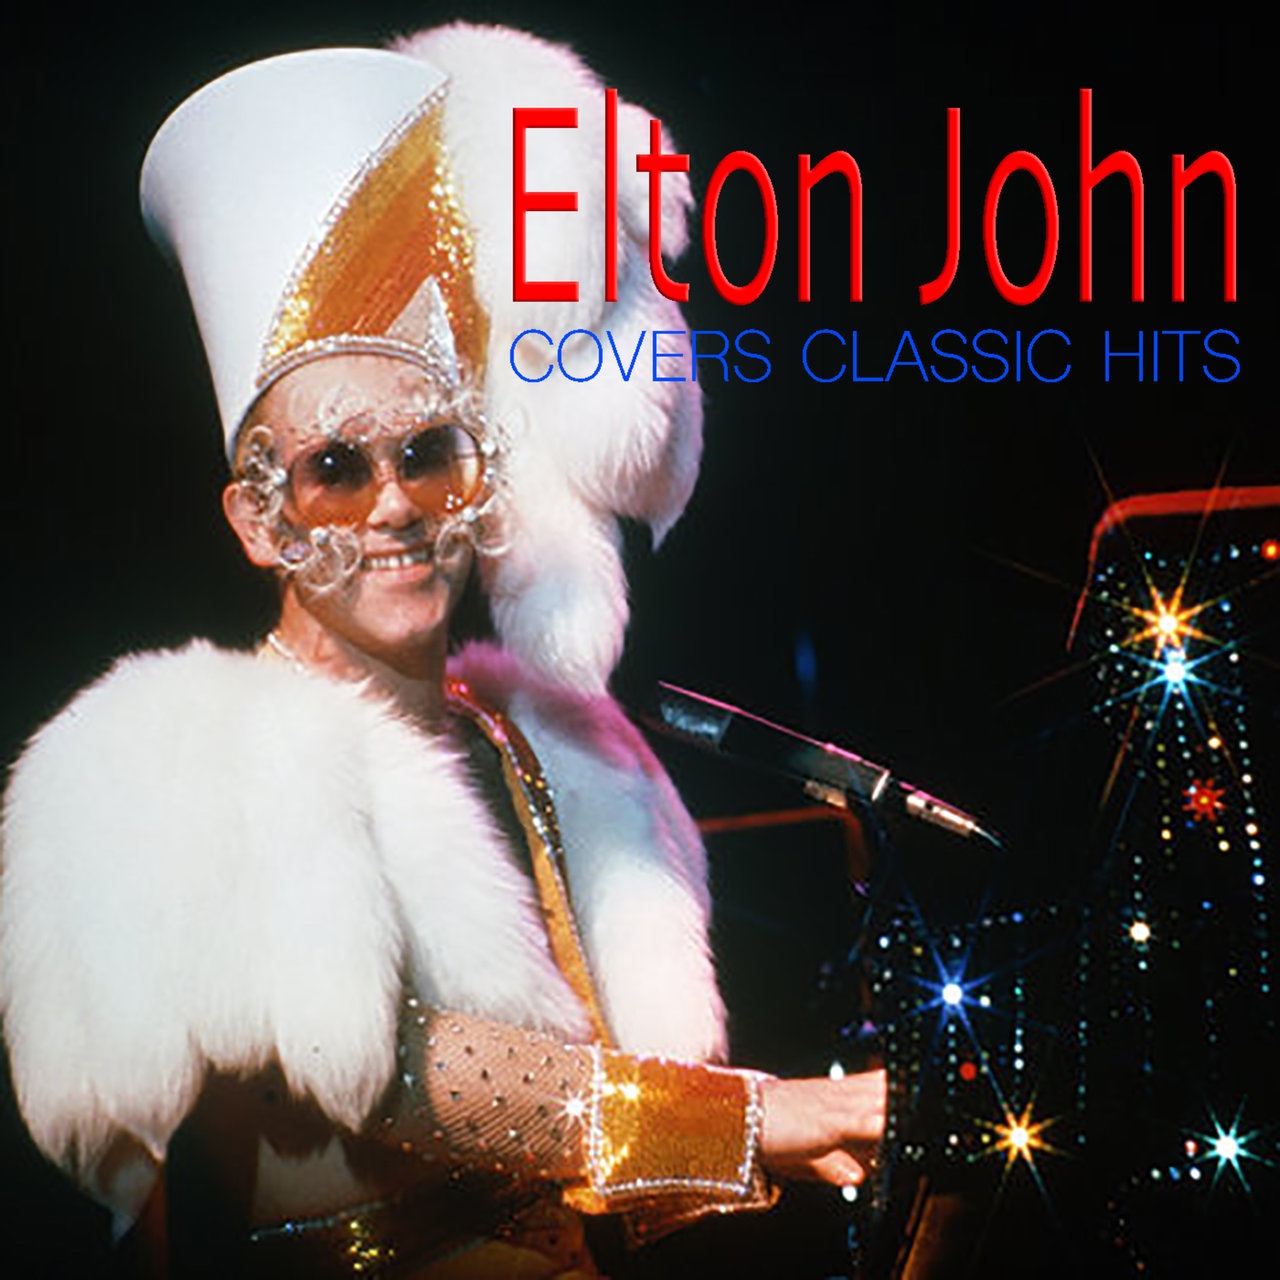 Elton John Covers Classic Hits